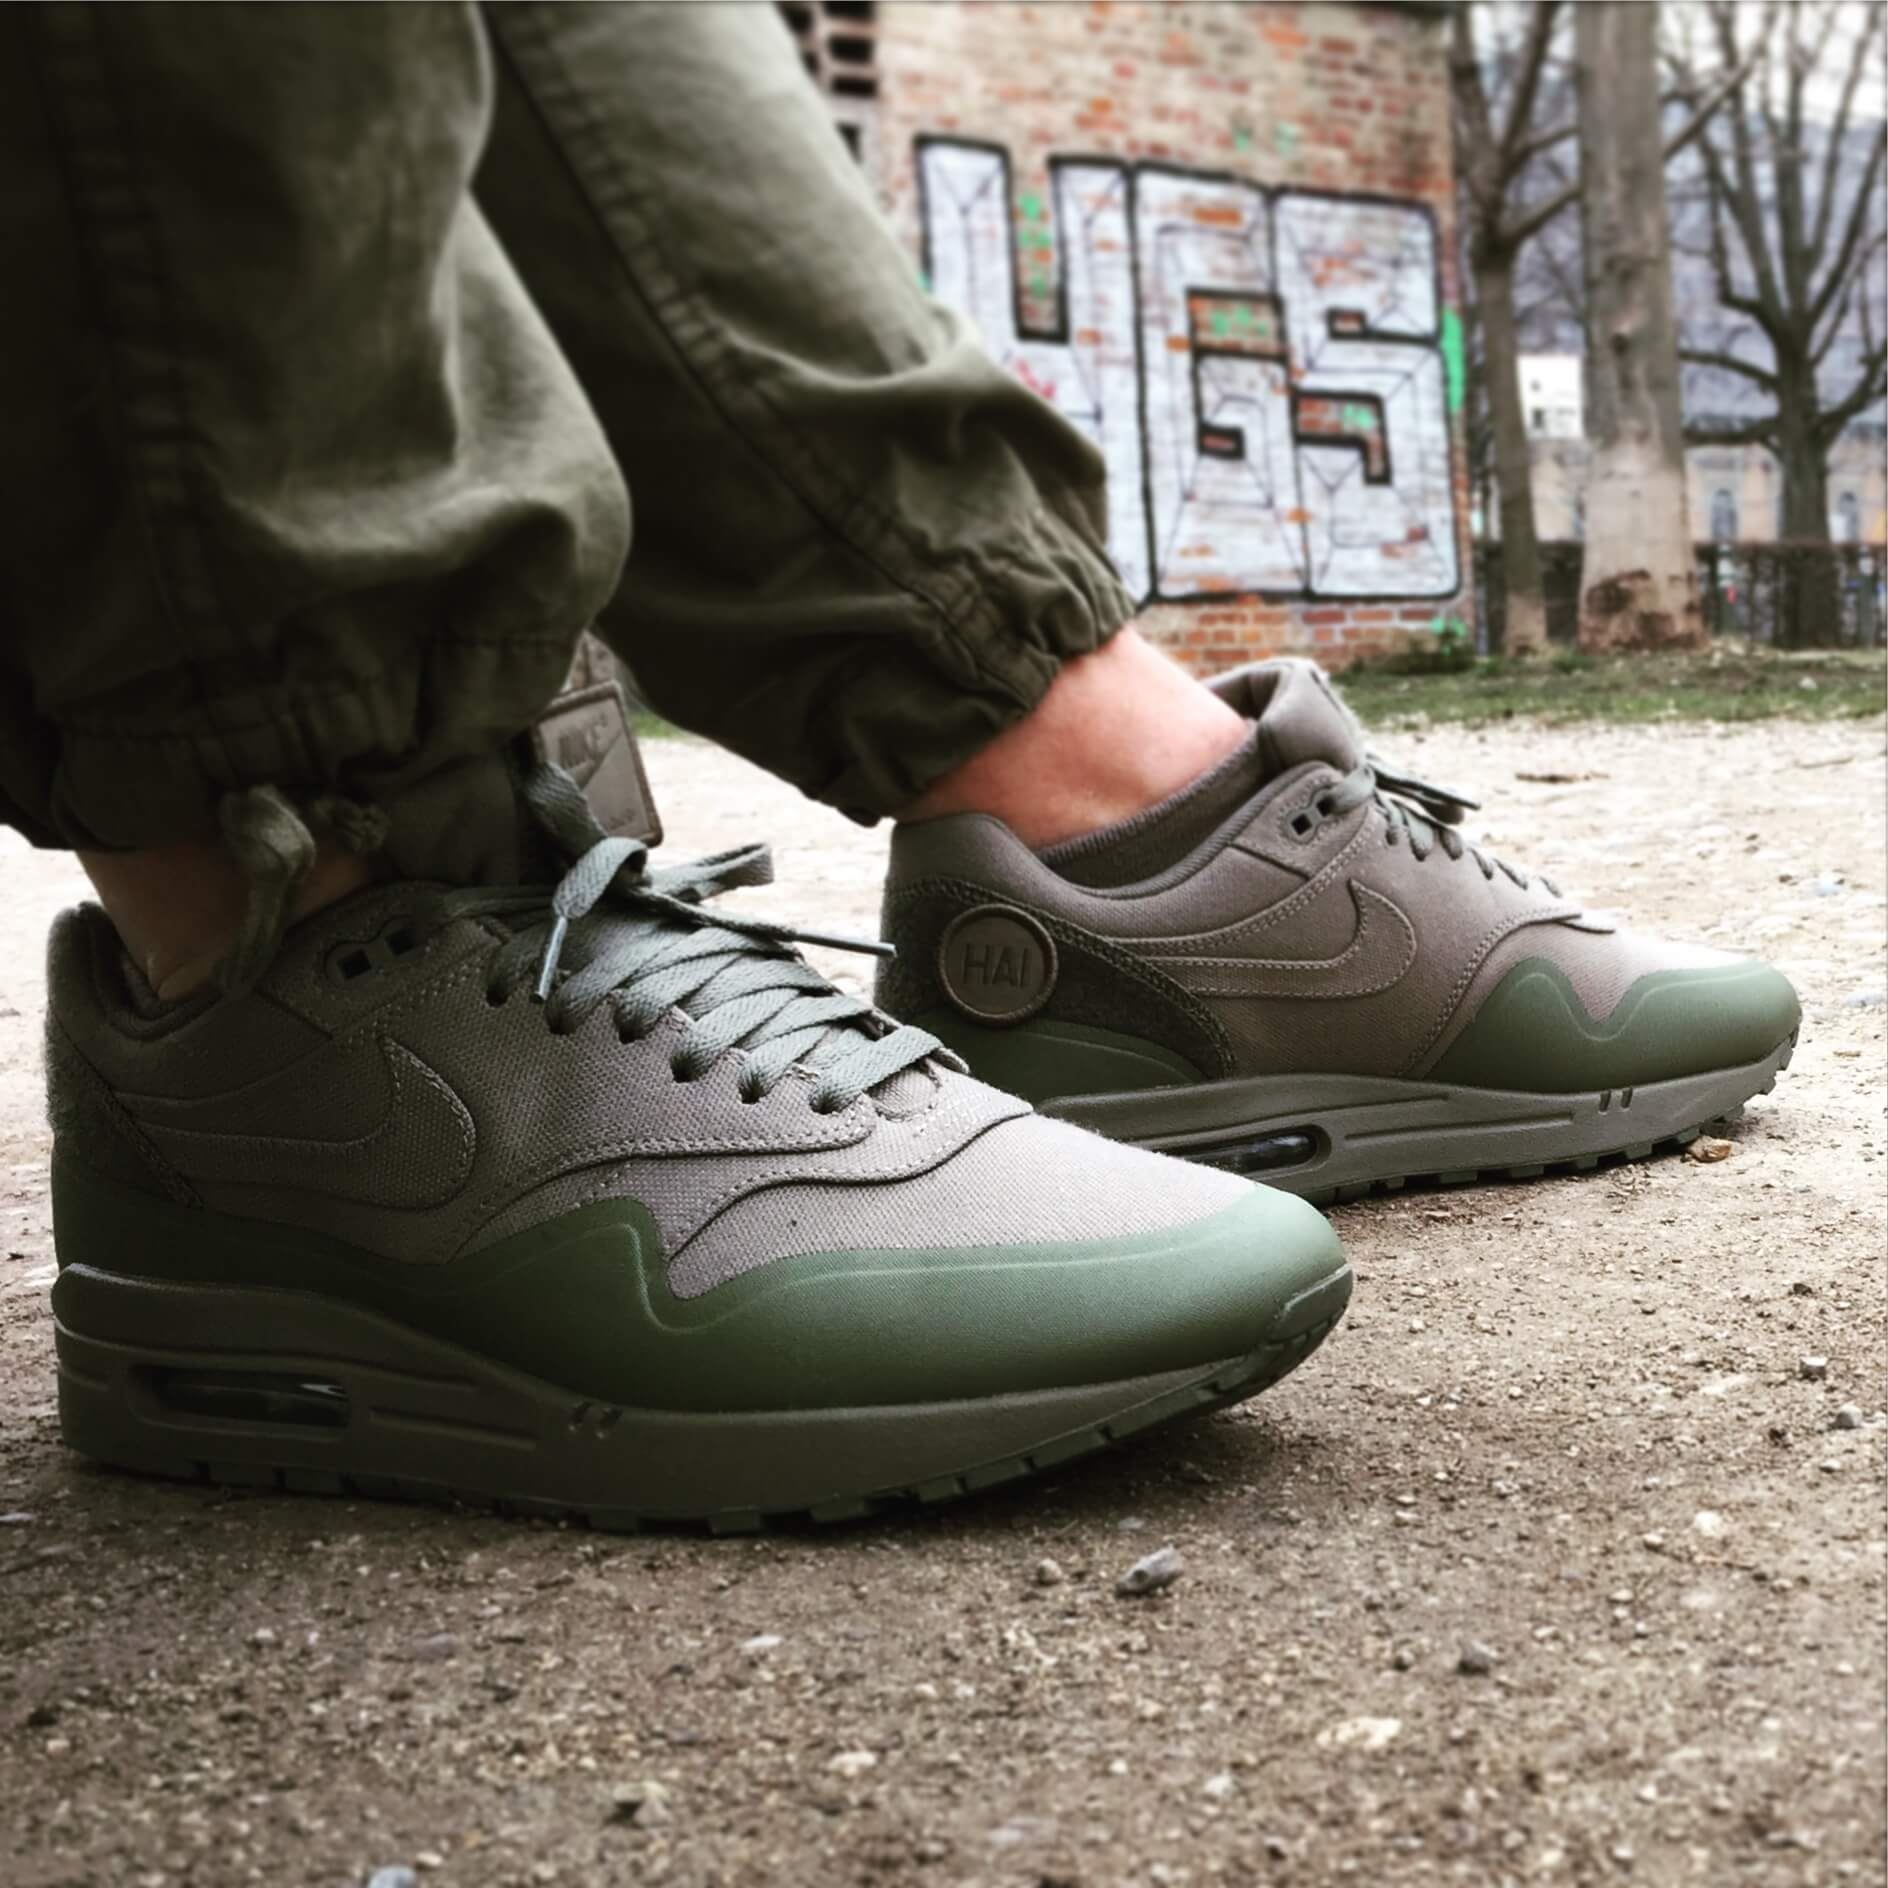 Nike-Air-Max-Patch-Pack-Side-View-3-Benstah-Onfeet